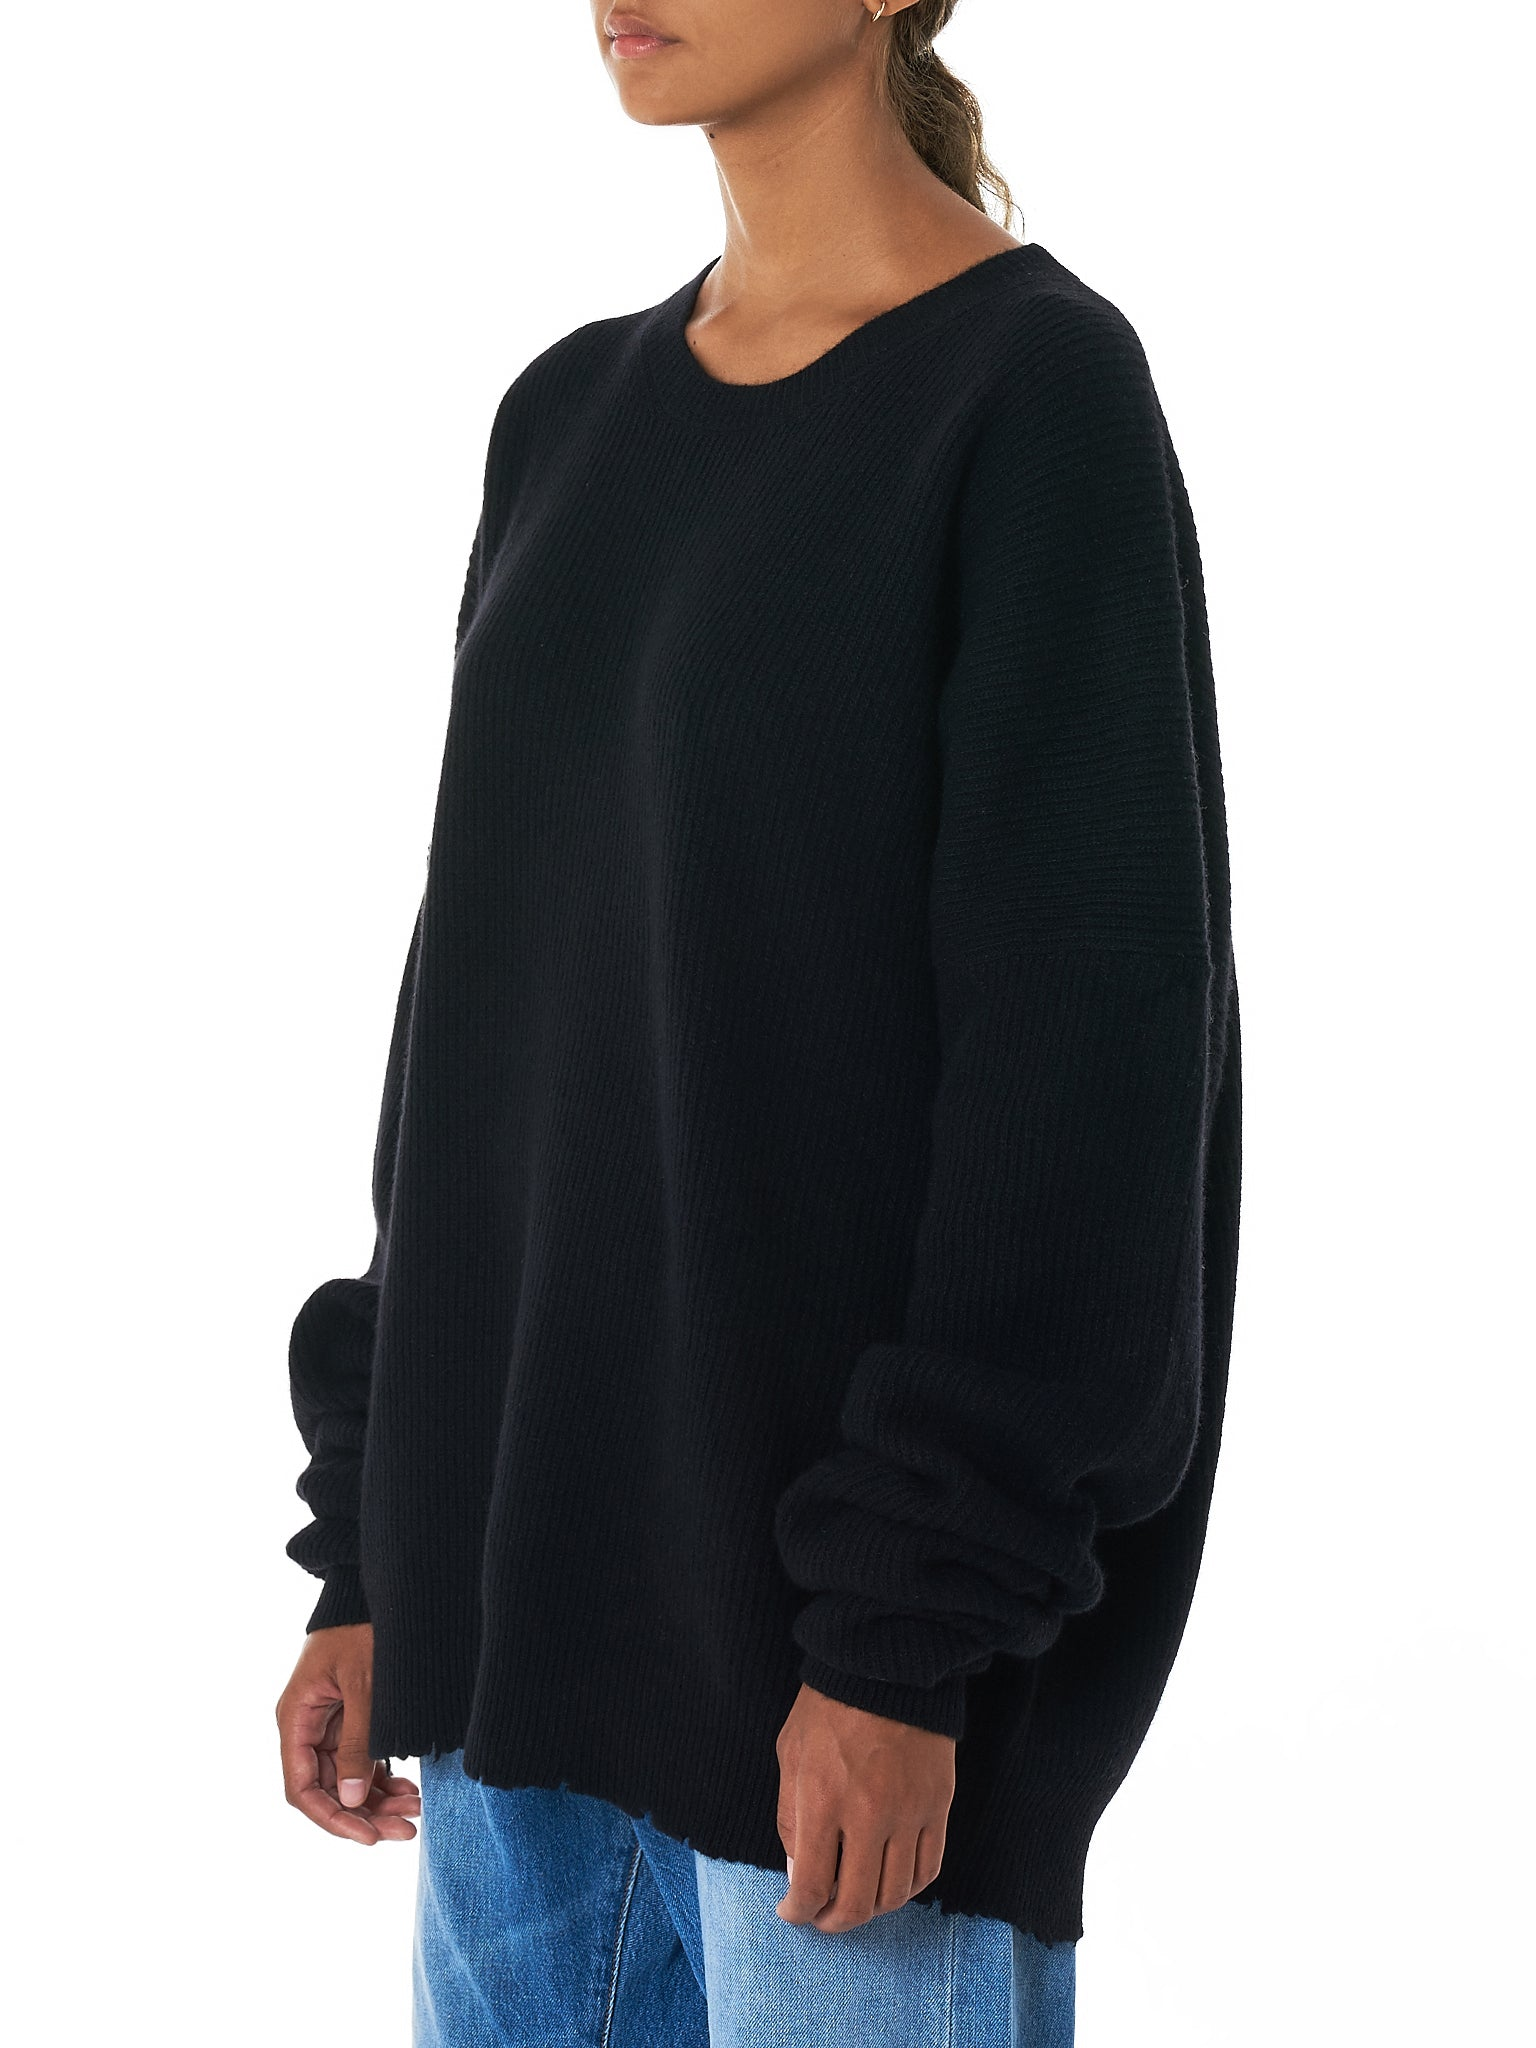 Unravel Sweater - Hlorenzo Side